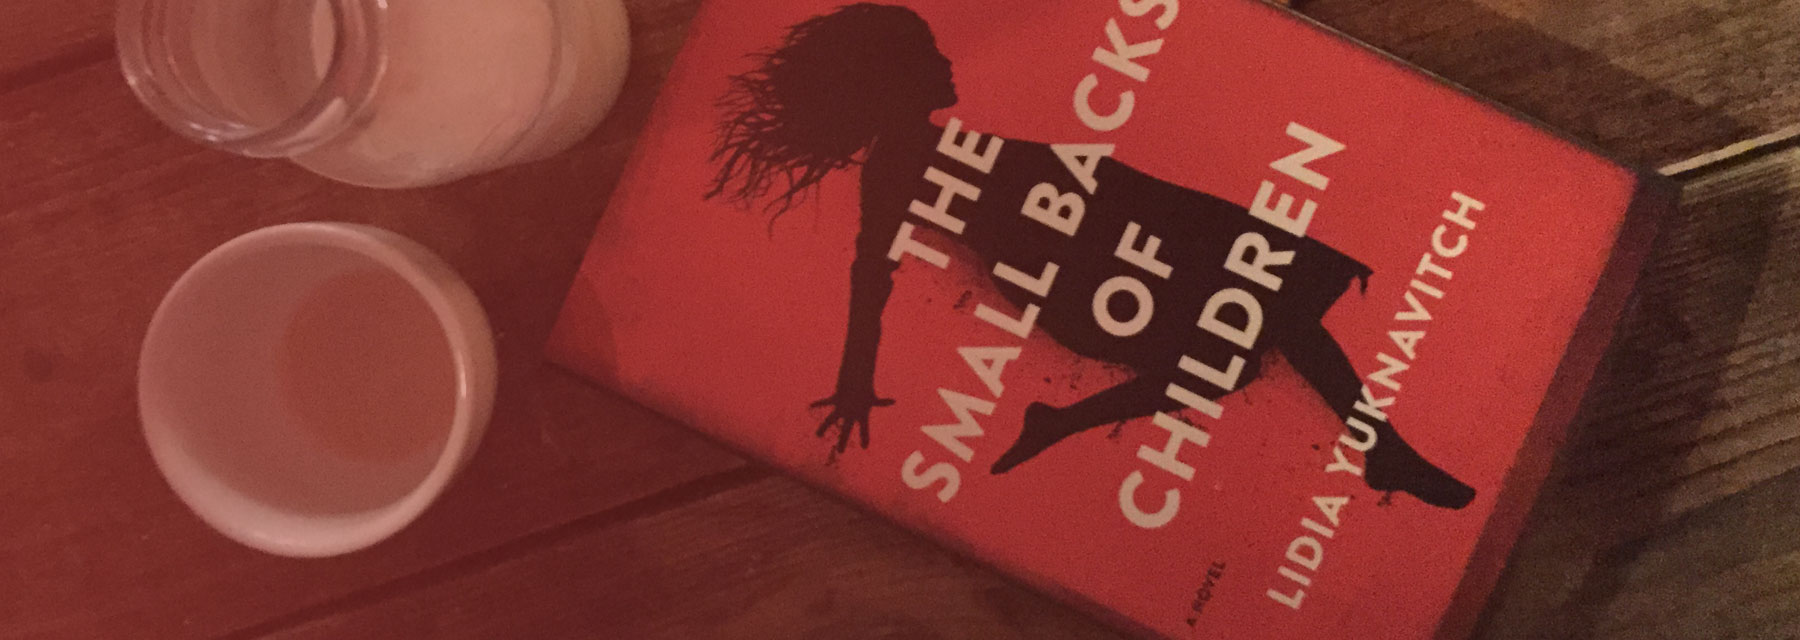 Review: The Small Backs of Children, by Lidia Yuknavitch